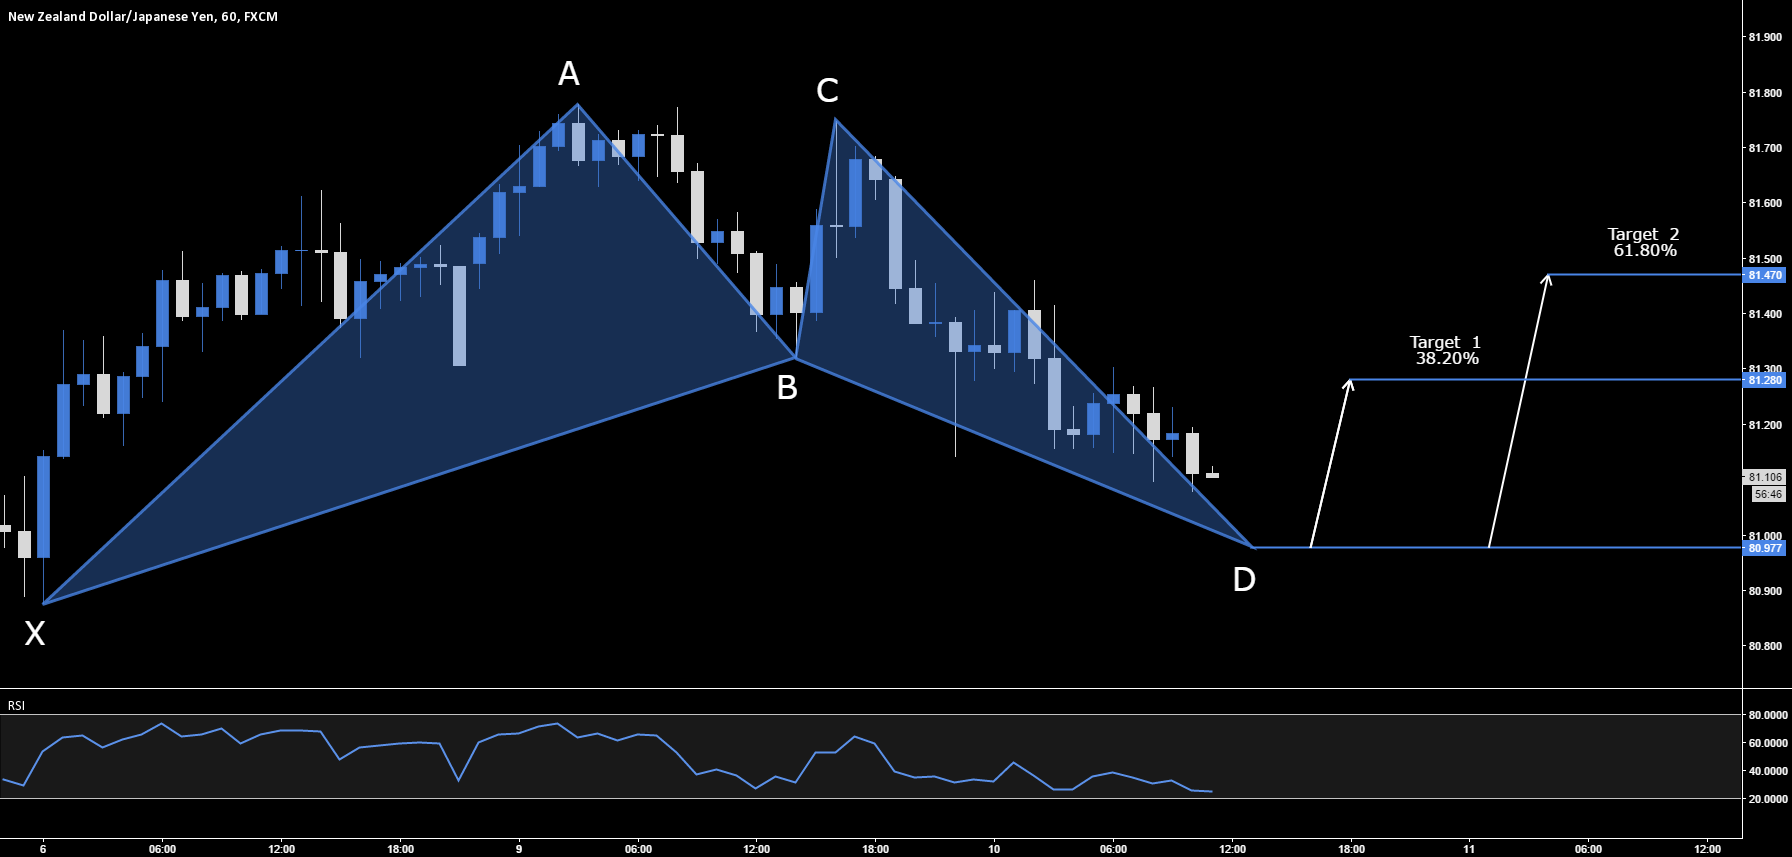 NZD.JPY - Bullish Bat Setup - 80.977